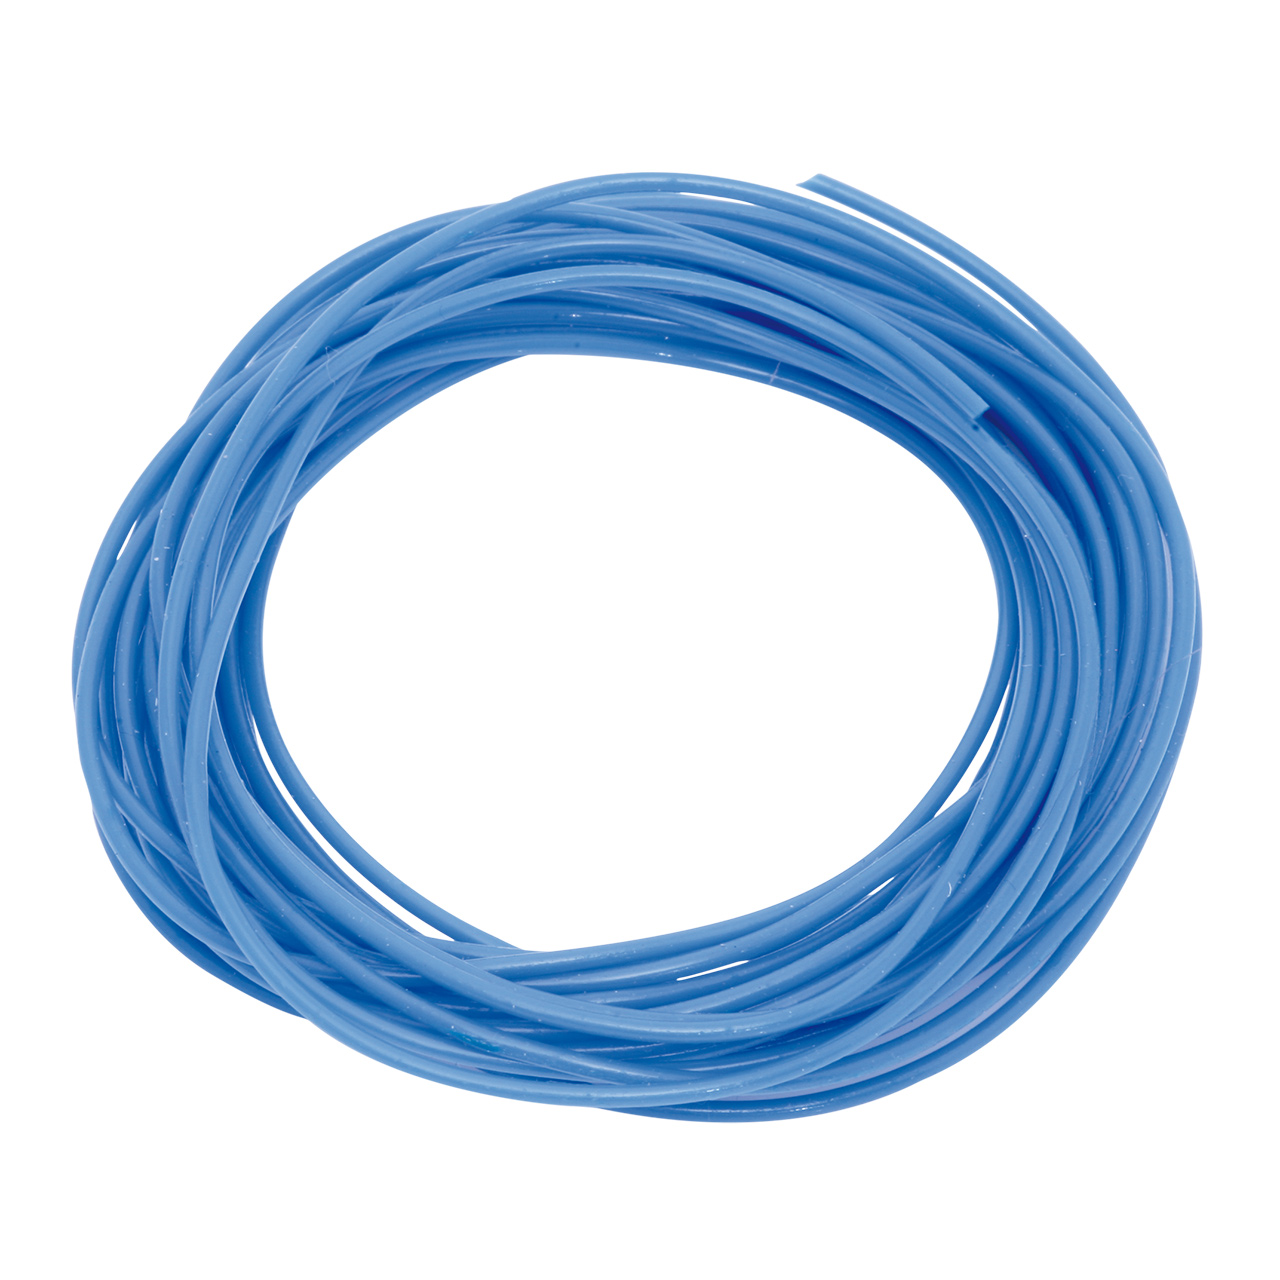 insulating tubing for wire, 5m